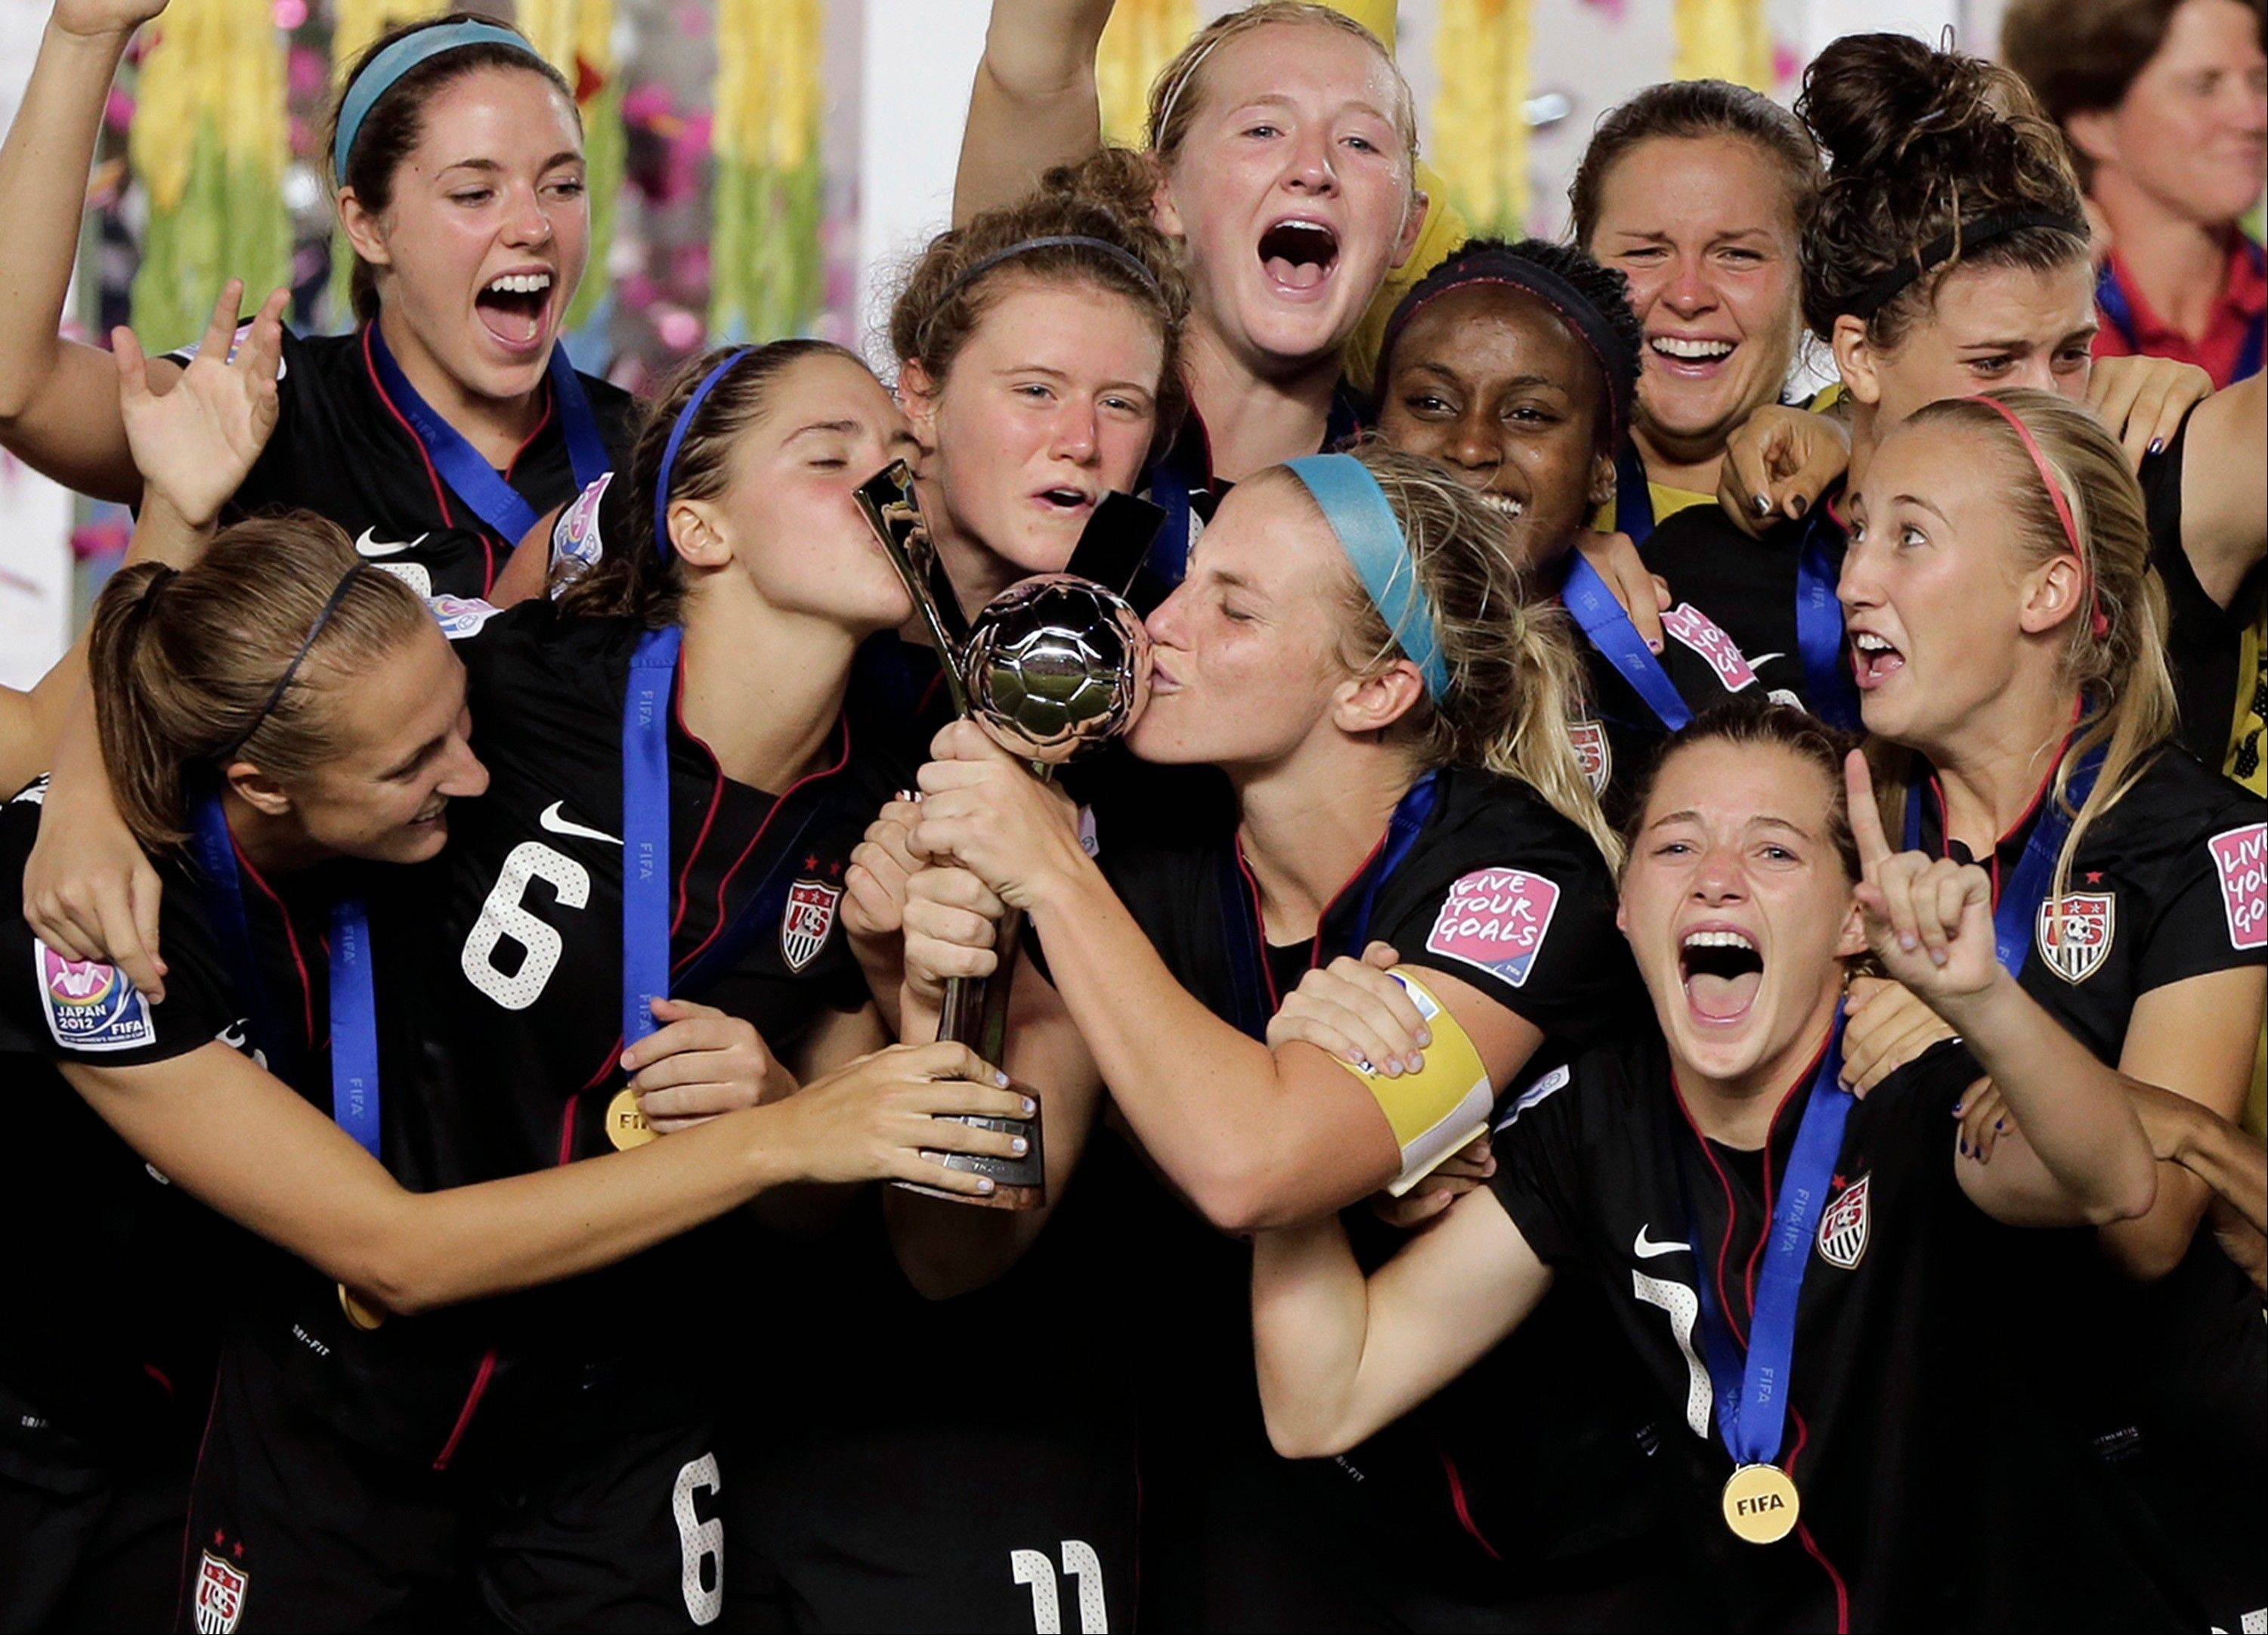 Associated Press The U.S. women's soccer Captain Julie Johnston, center, kisses the trophy as she celebrates with her teammates after defeating Germany 1-0 to win the U20 women's World Cup final in Tokyo on Saturday.